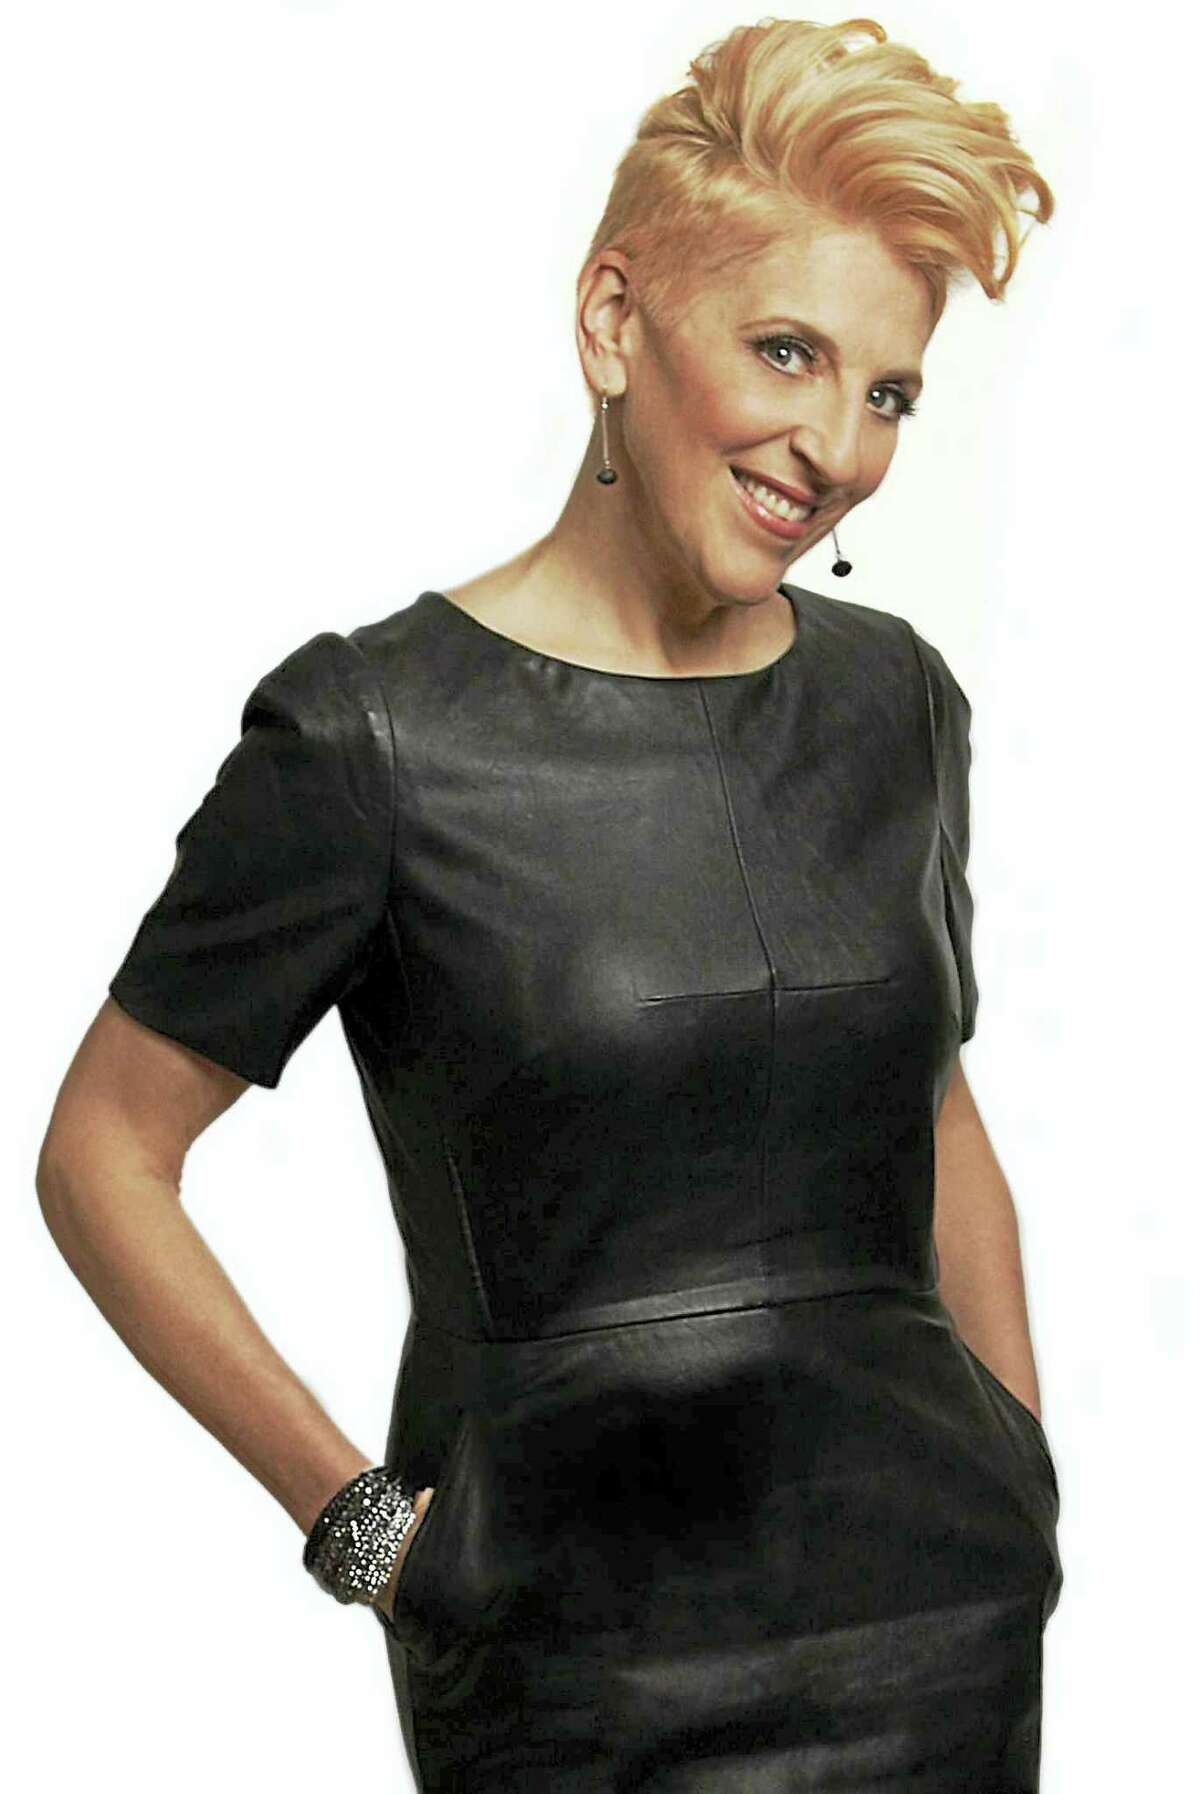 Comedy's very own Queen of Mean, Lisa Lampanelli, is bringing her all-new live stand-up comedy show to the Warner Theatre's Main Stage on Saturday, March 25 at 8 p.m.